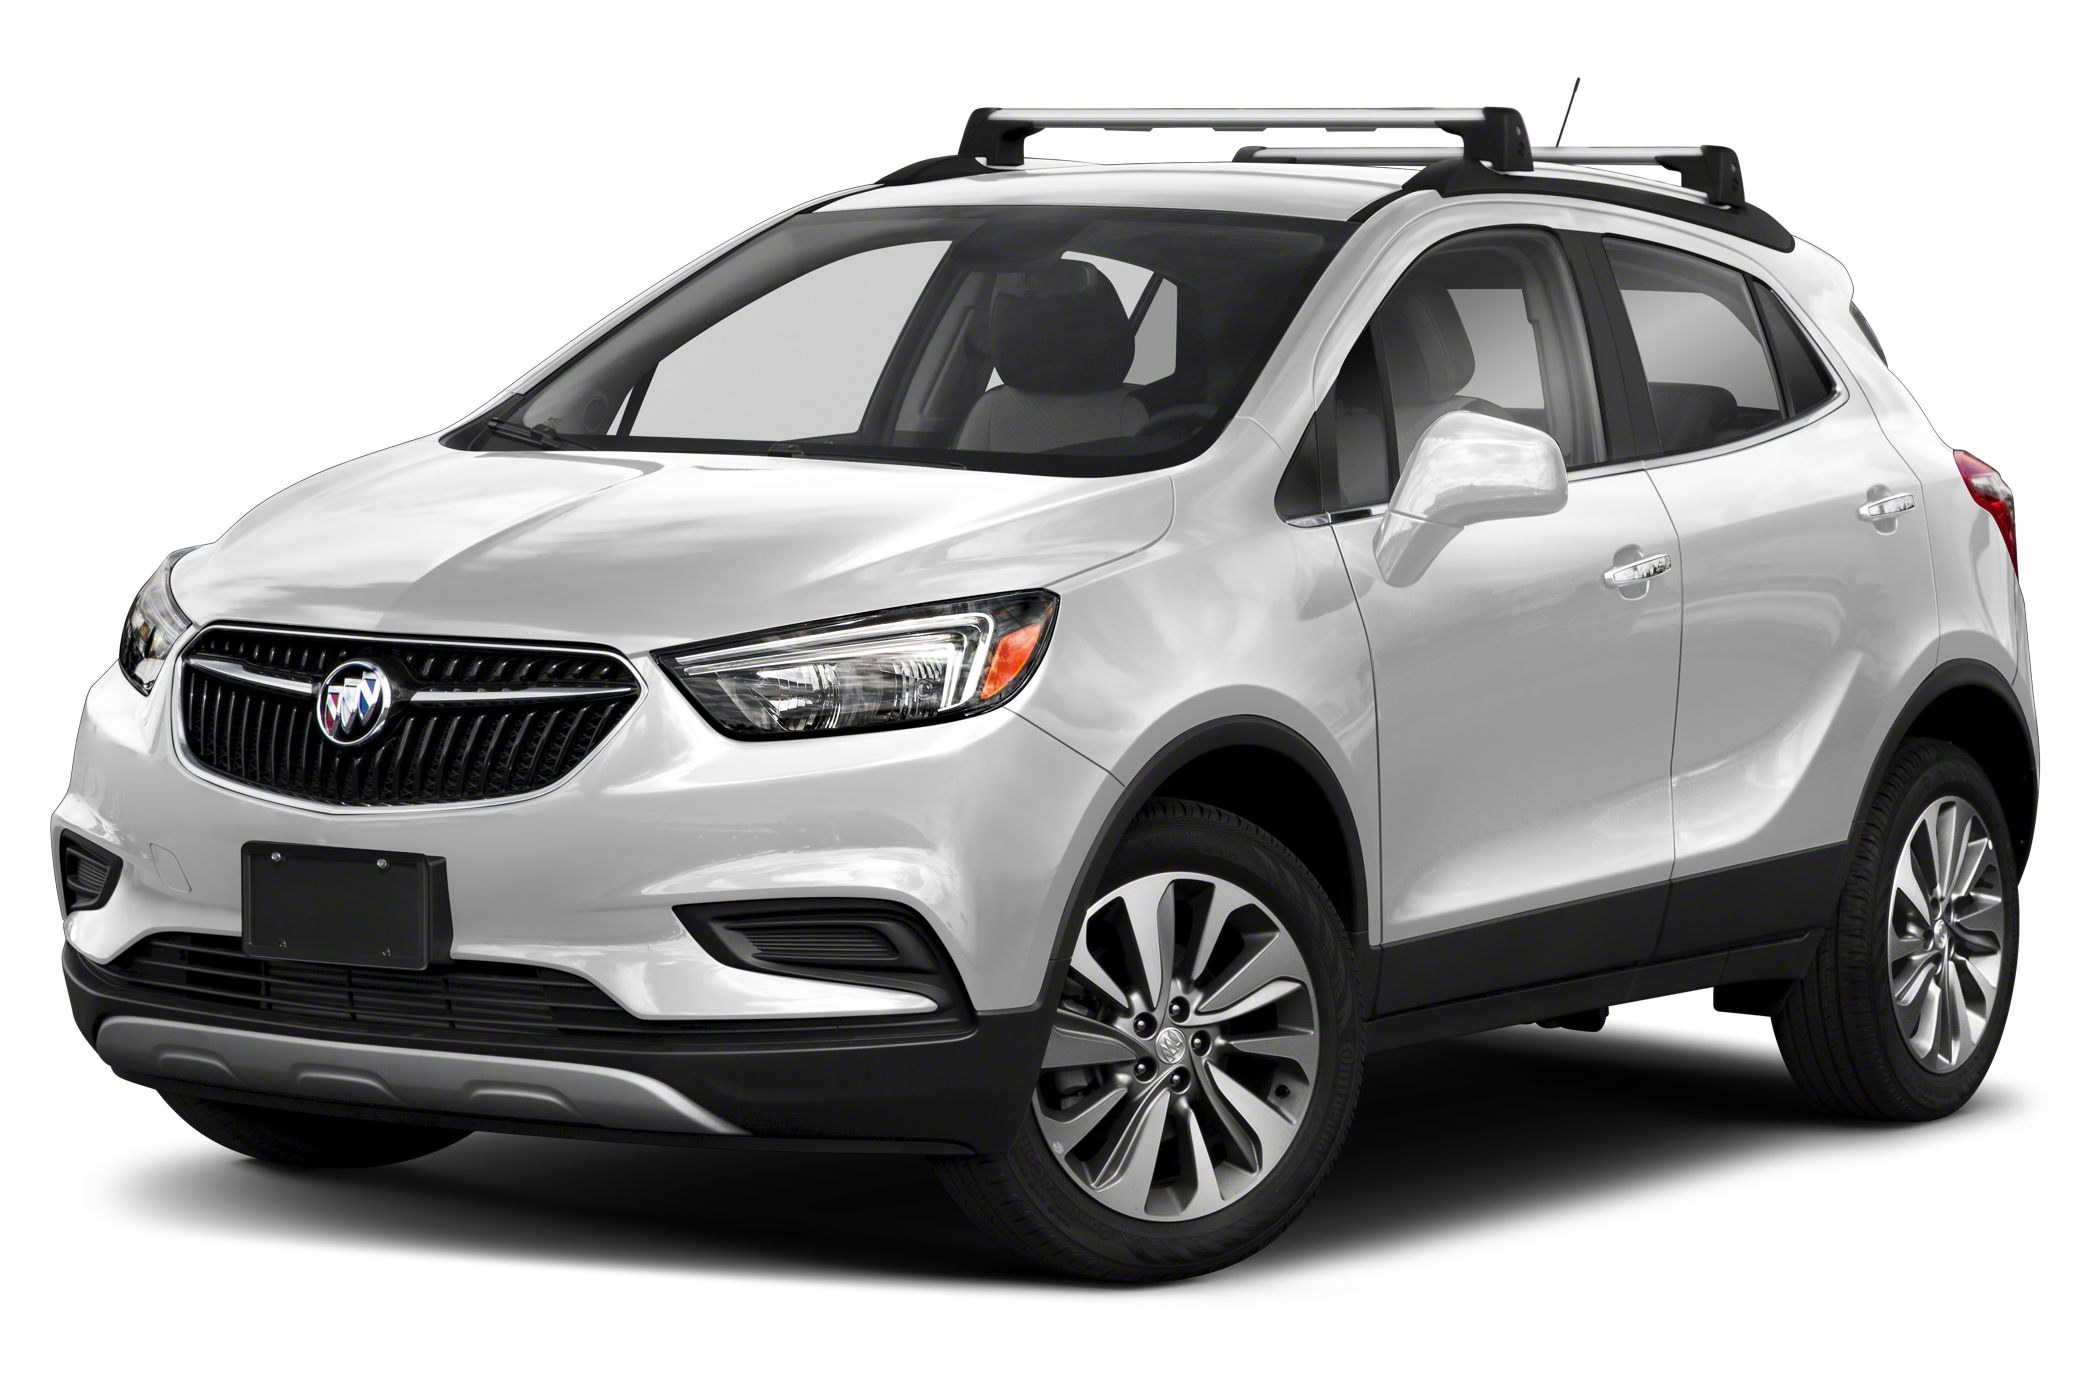 2021 Buick Encore Preferred All-Wheel Drive Pricing And Options New 2021 Buick Encore Reviews, Preferred, Price